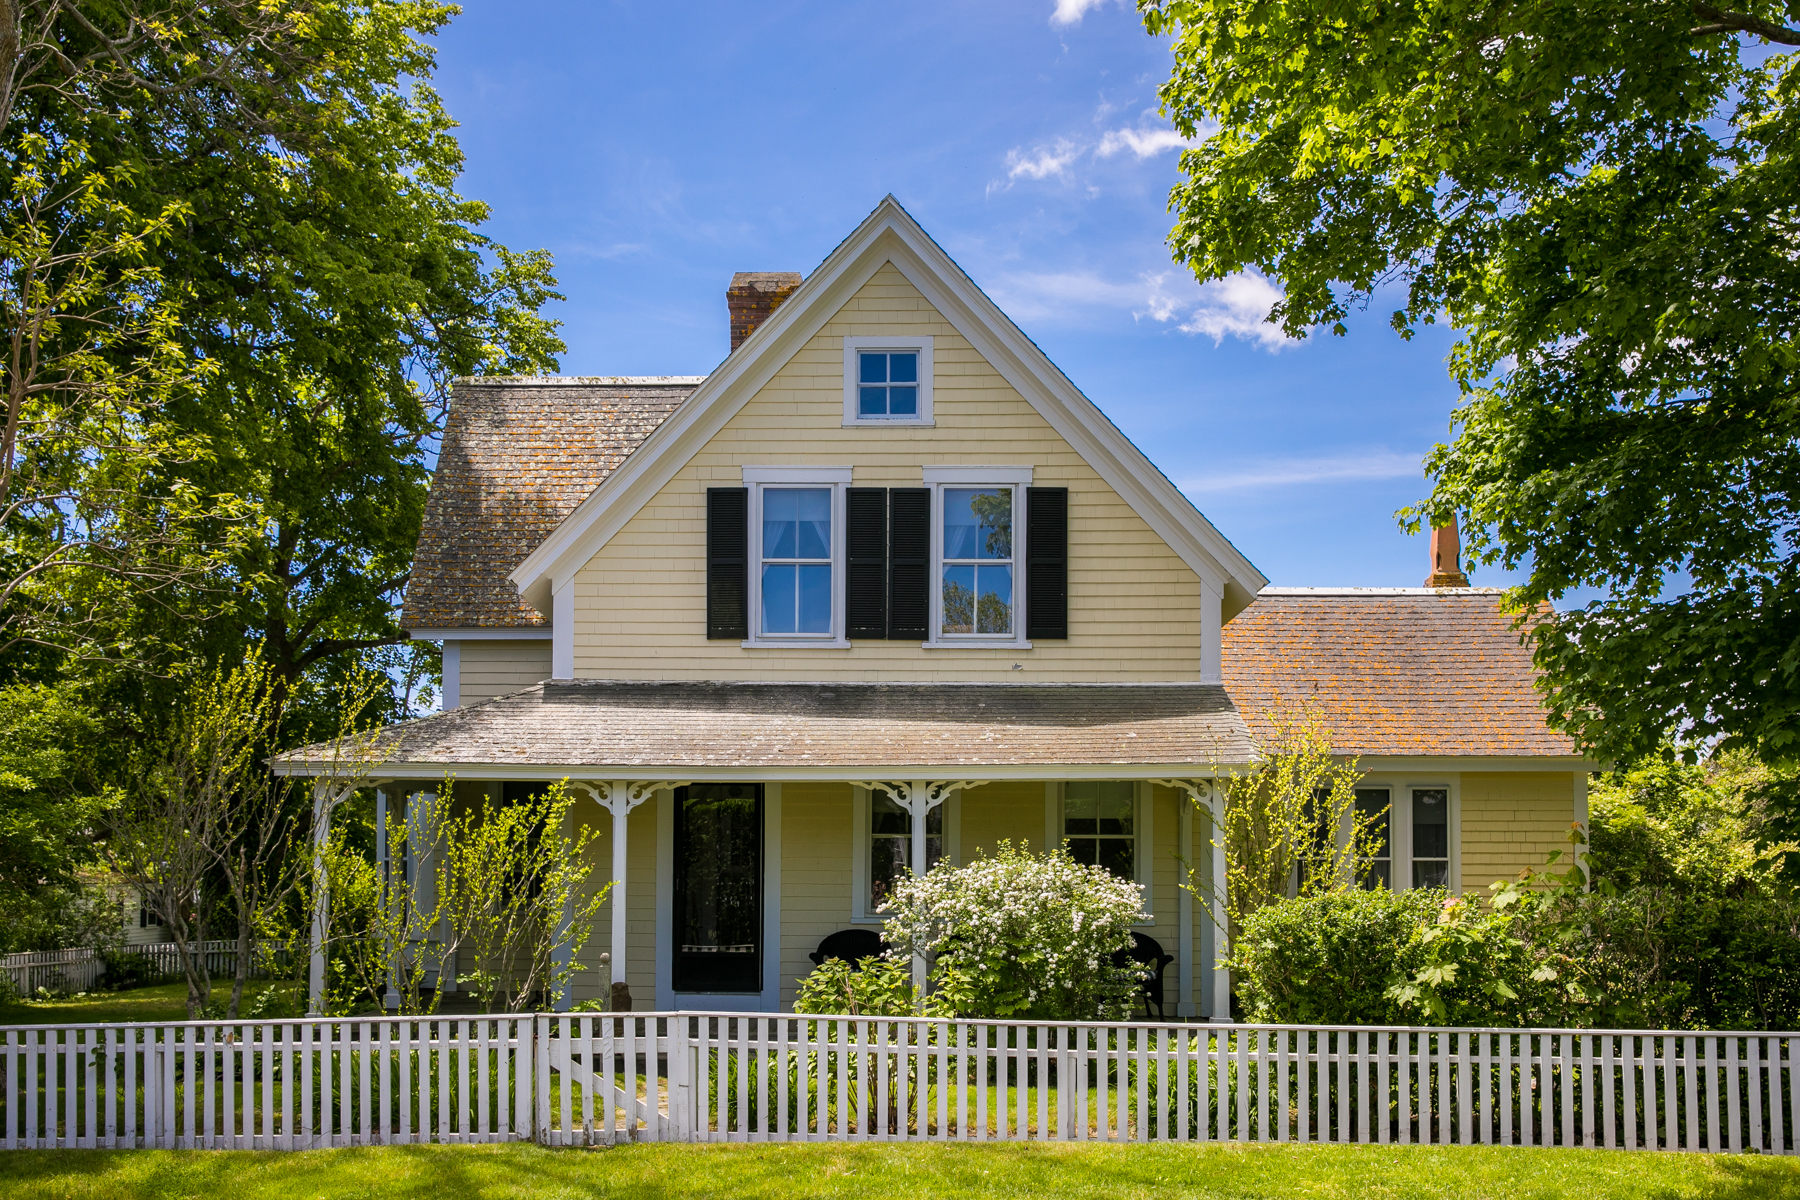 Single Family Home for Sale at Extraordinary village living in Edgartown 22 Pierce Lane Edgartown, Massachusetts, 02539 United States